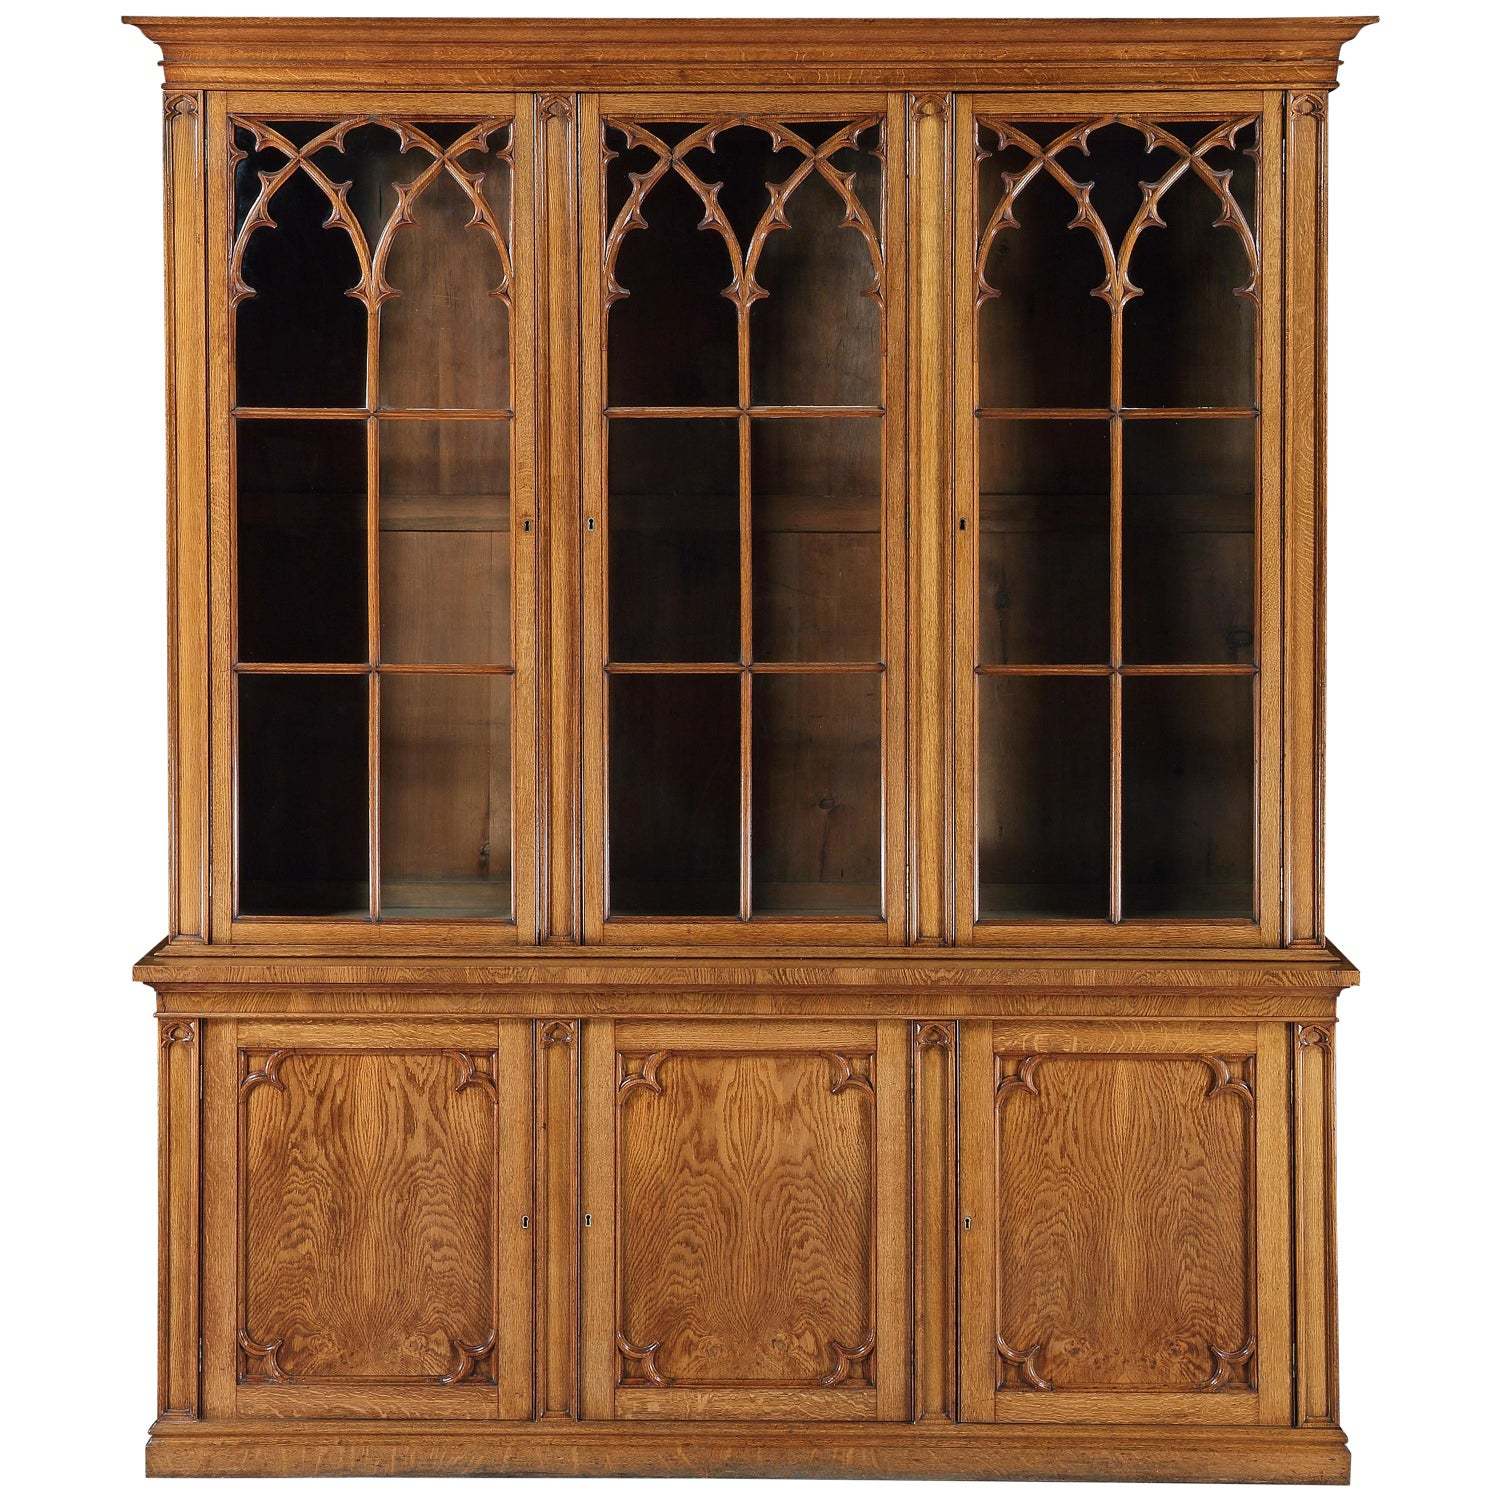 Bookcase, Glazed, Free-standing, Full-height, Gothic, Oak